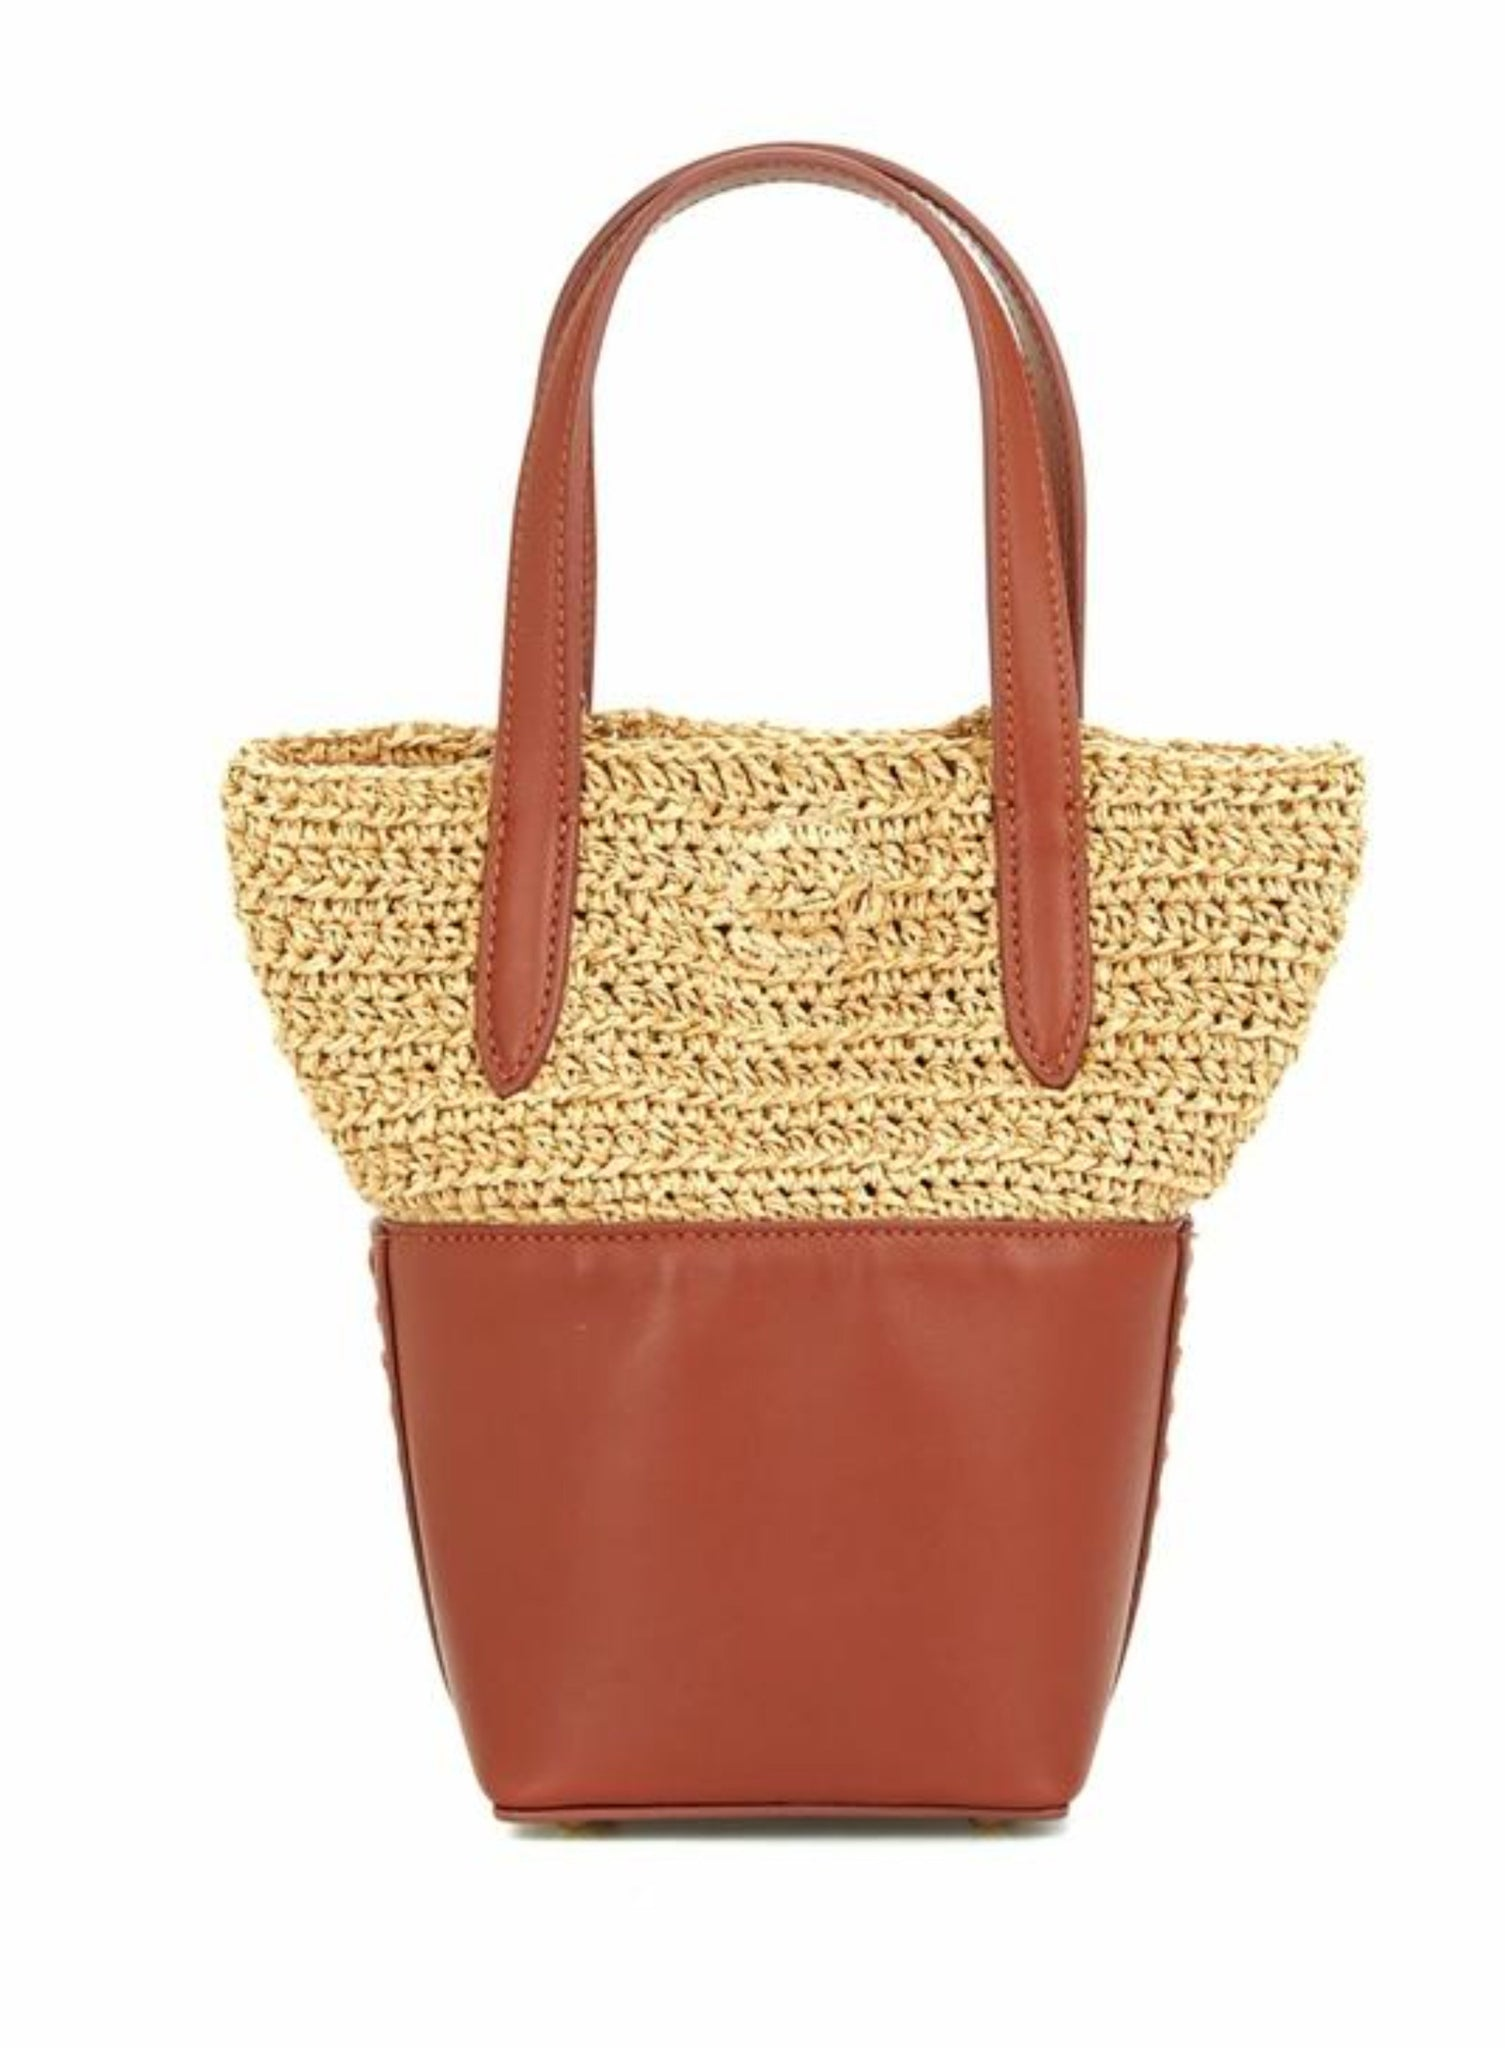 LouLou Bag with Handwoven Raffia/Leather